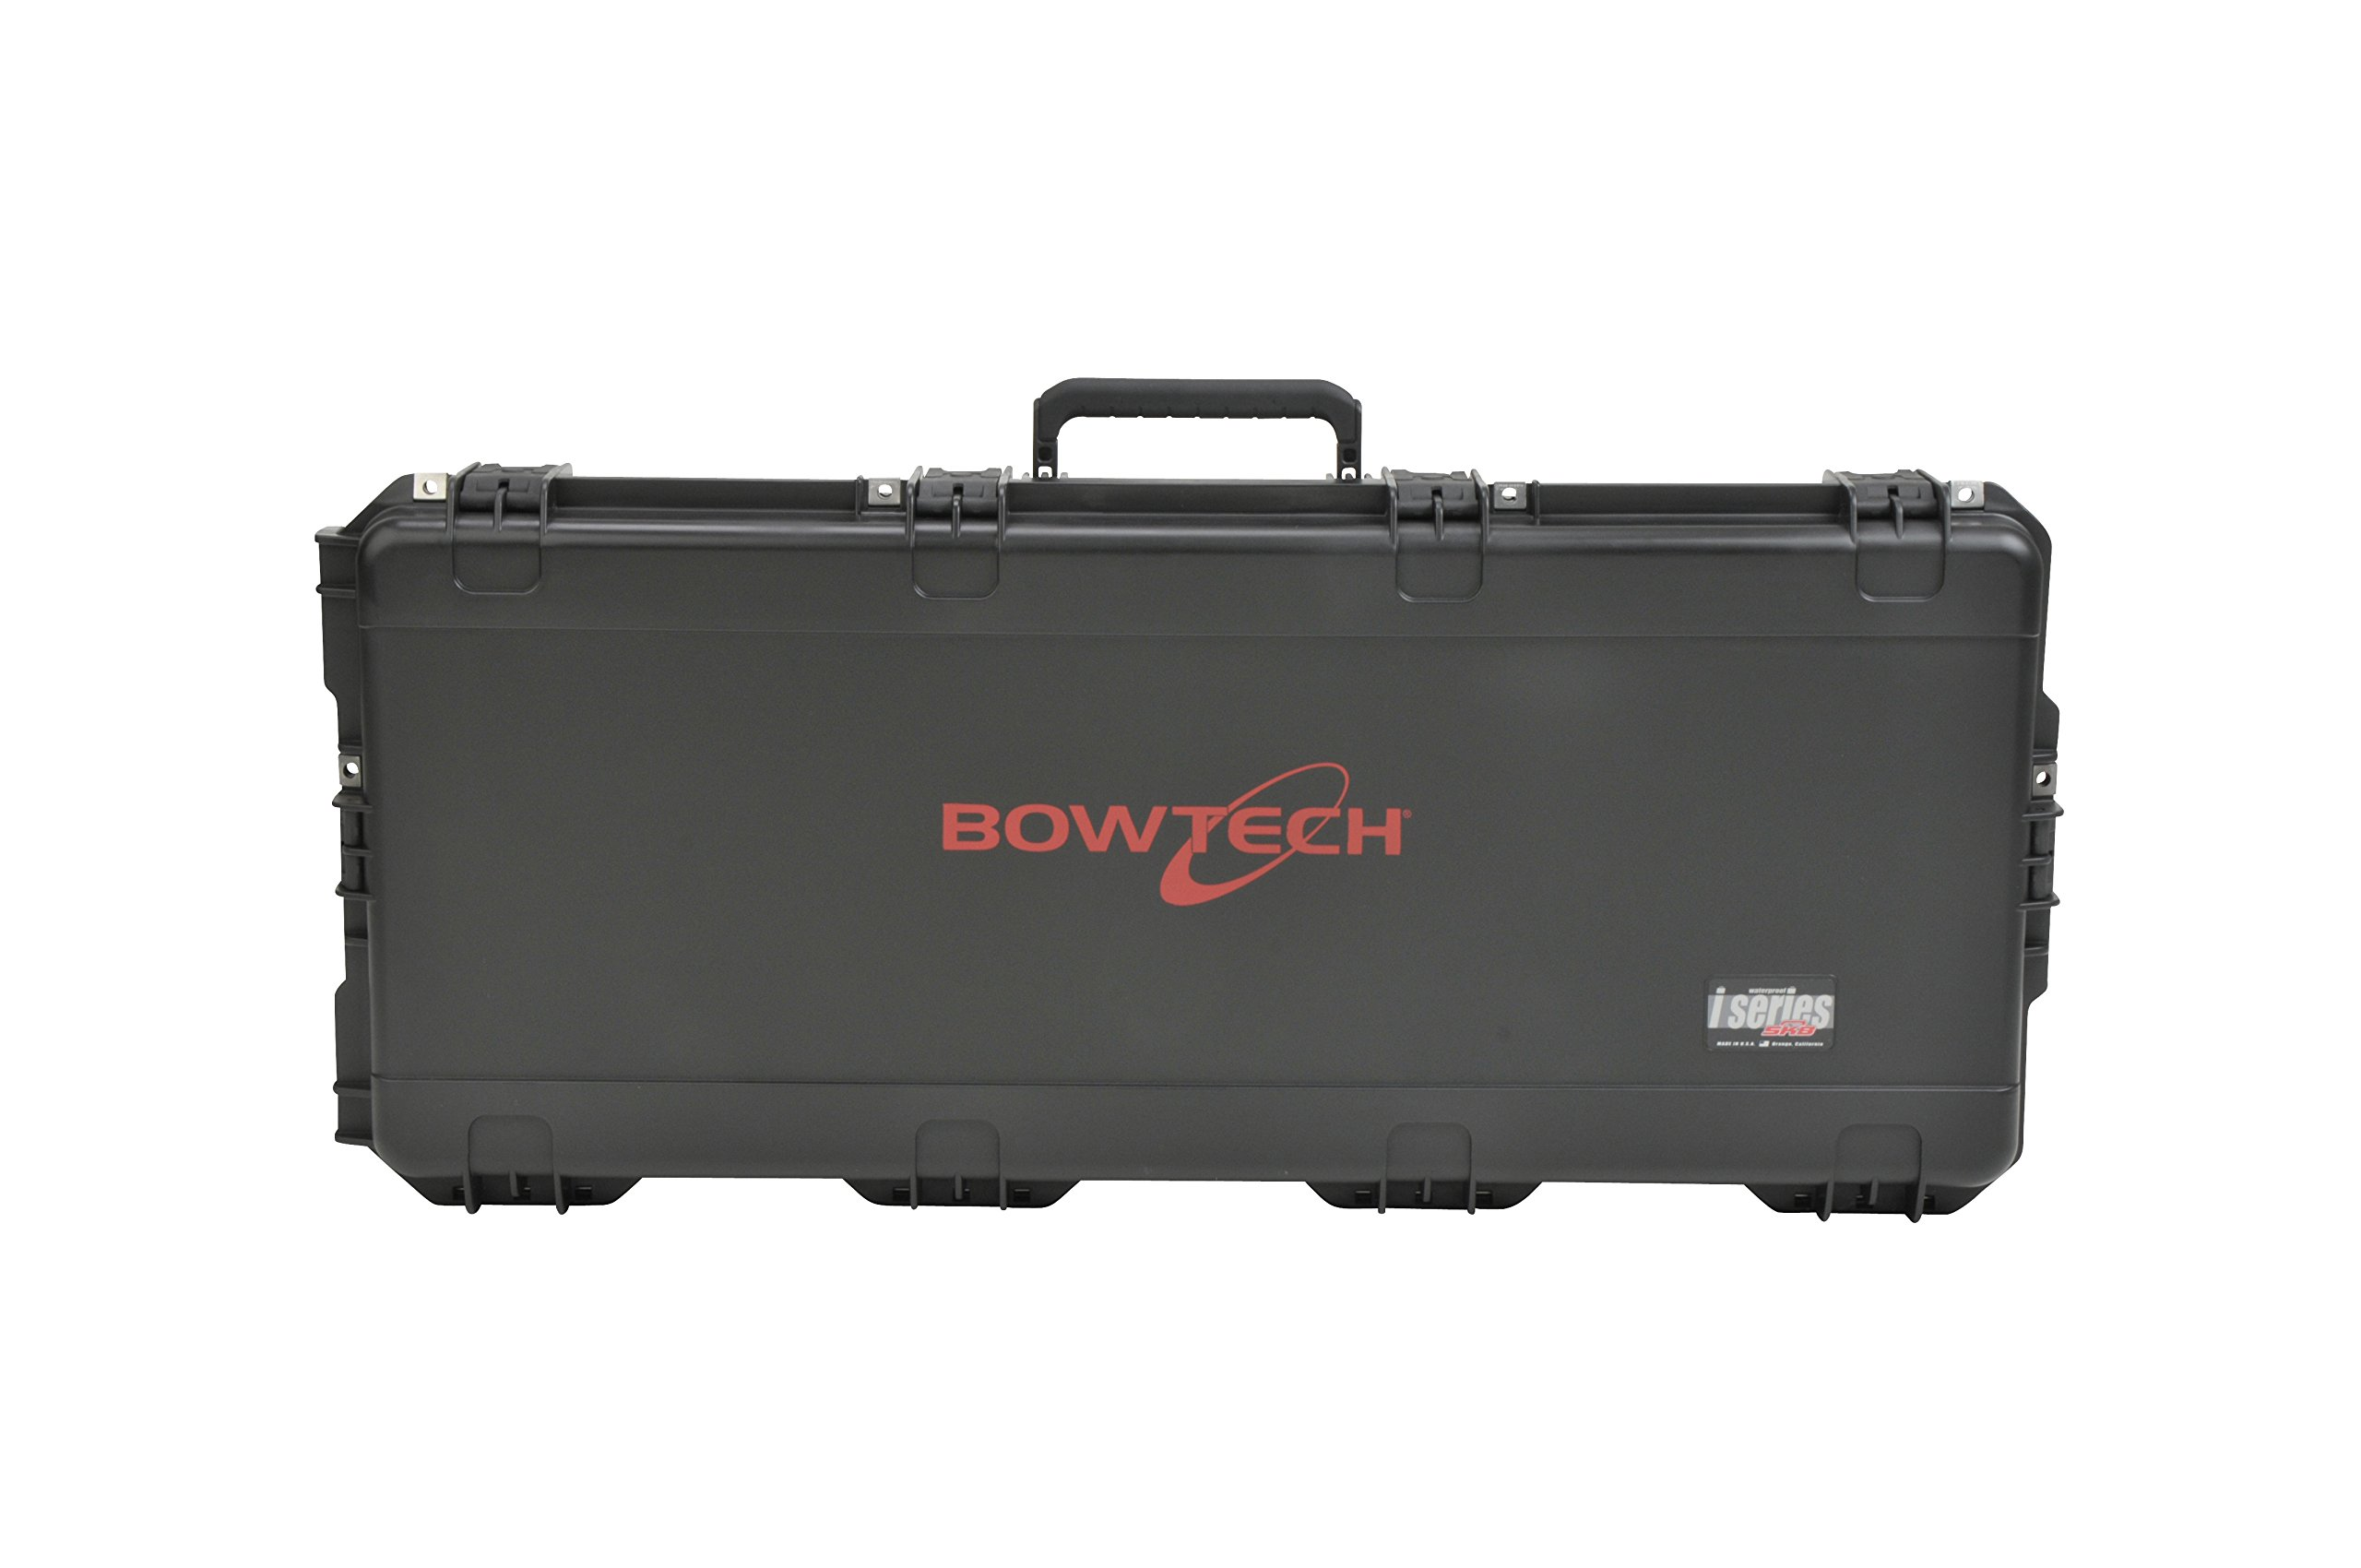 SKB Cases iSeries Bowtech Double Bow Case, Black by SKB Cases (Image #1)